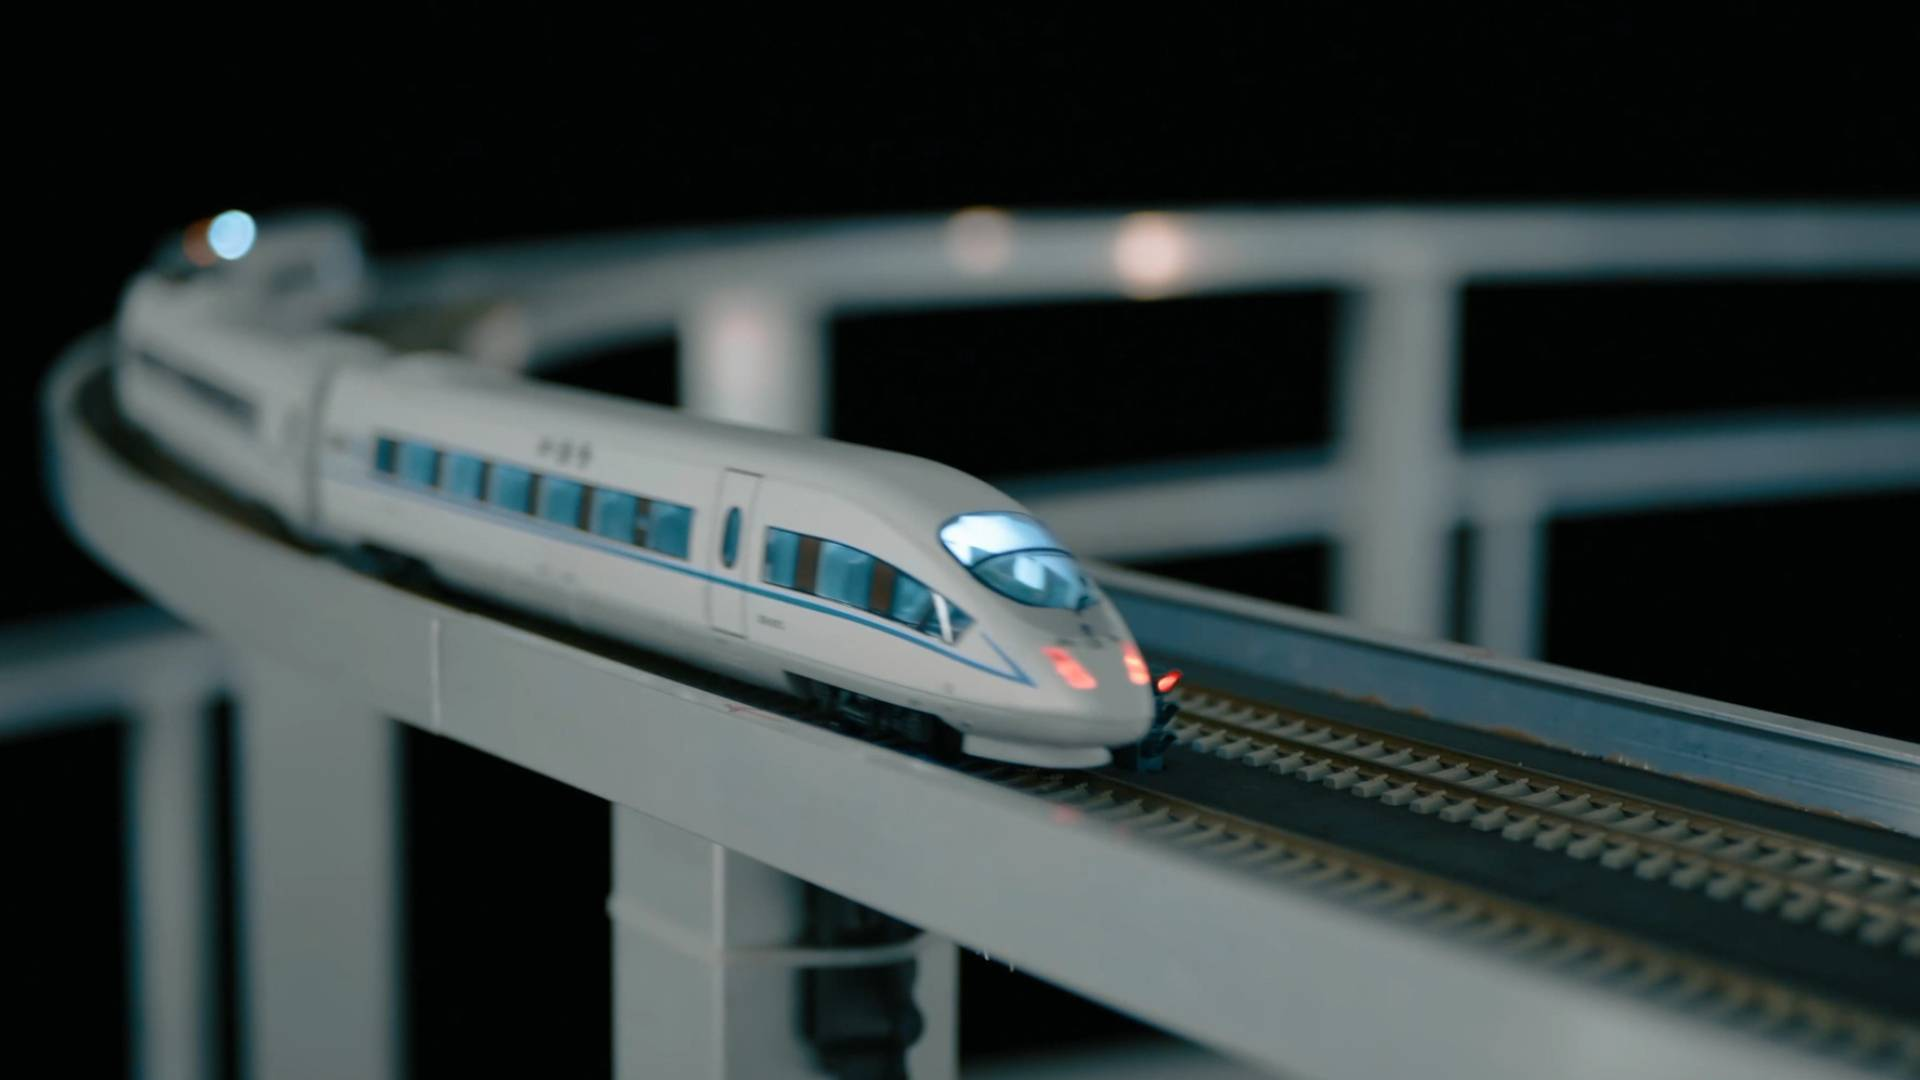 GLOBALink | A Hong Kong man's passion for high-speed rail